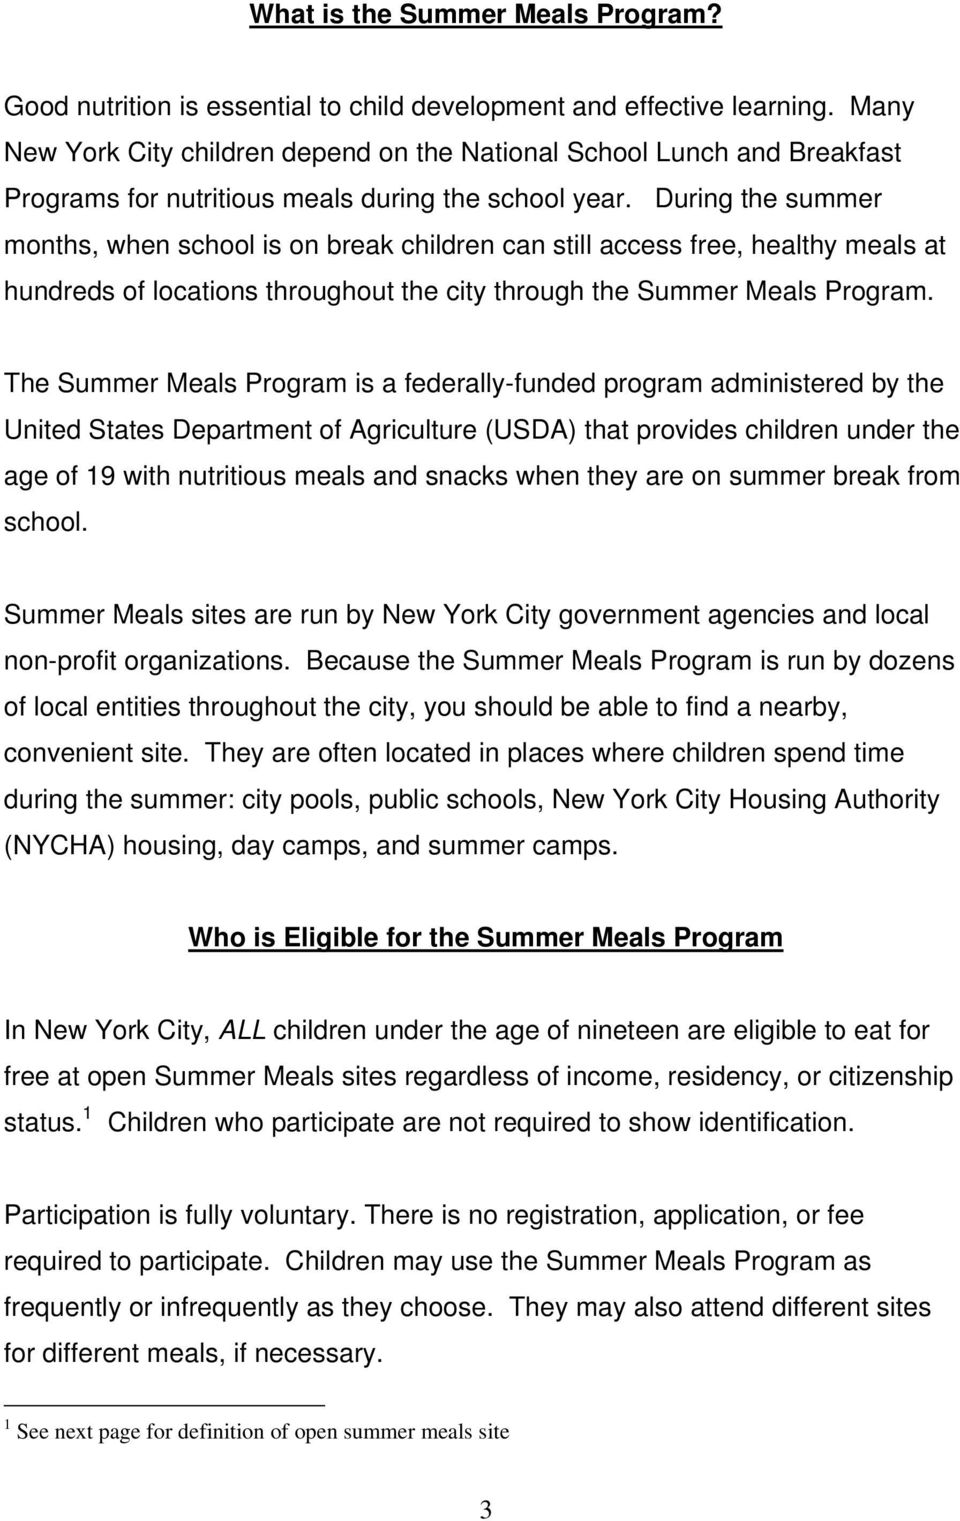 During the summer months, when school is on break children can still access free, healthy meals at hundreds of locations throughout the city through the Summer Meals Program.